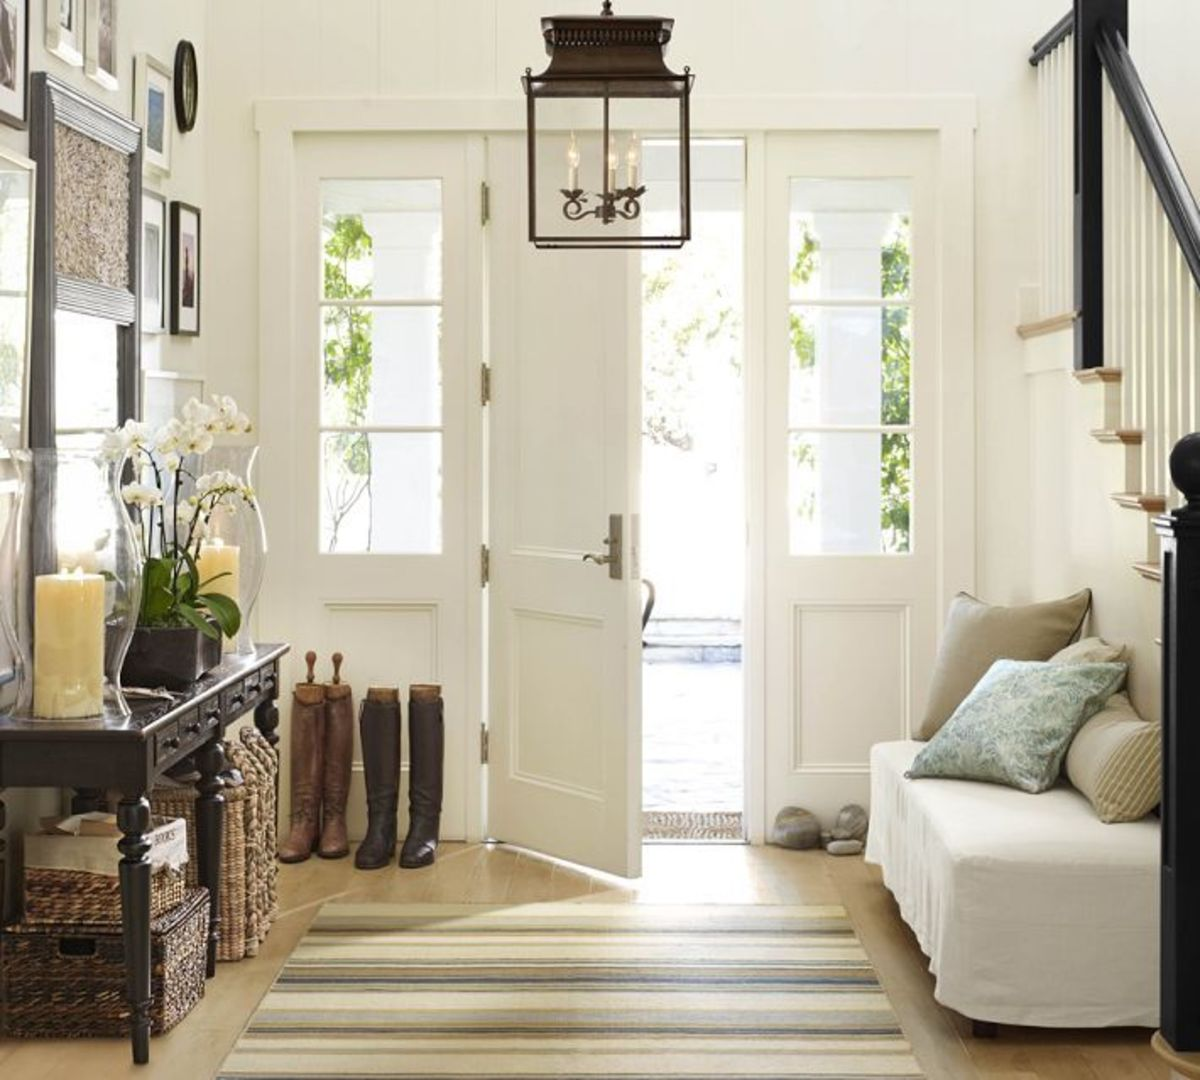 An effective entryway design combines comfort, utility, and style to create an inviting atmosphere.